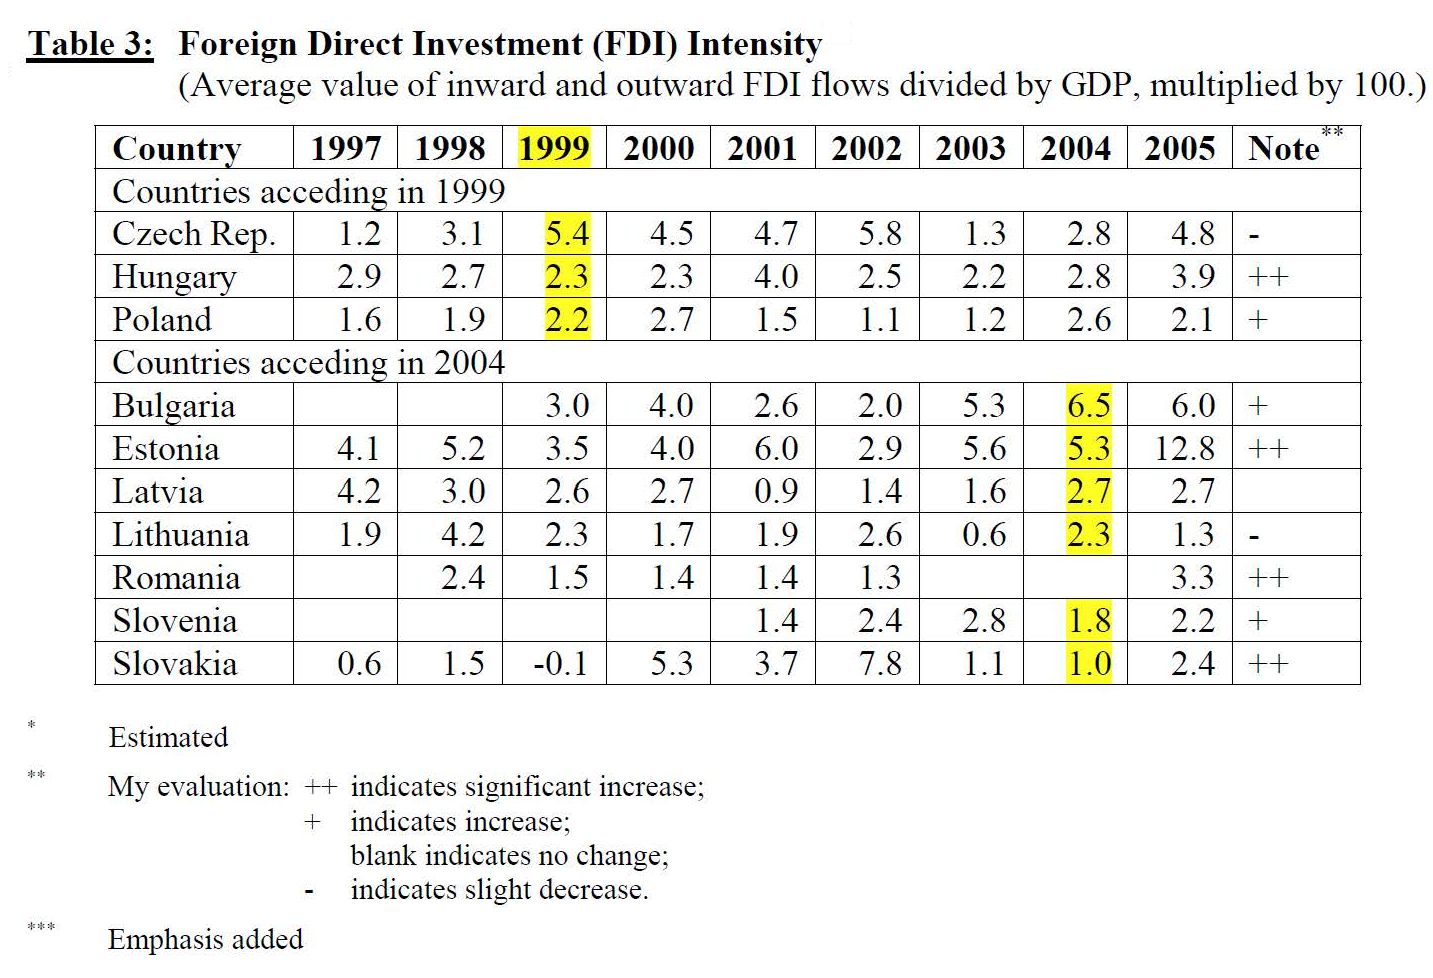 Table depicting Foreign Direct Investment (FDI) Intensity